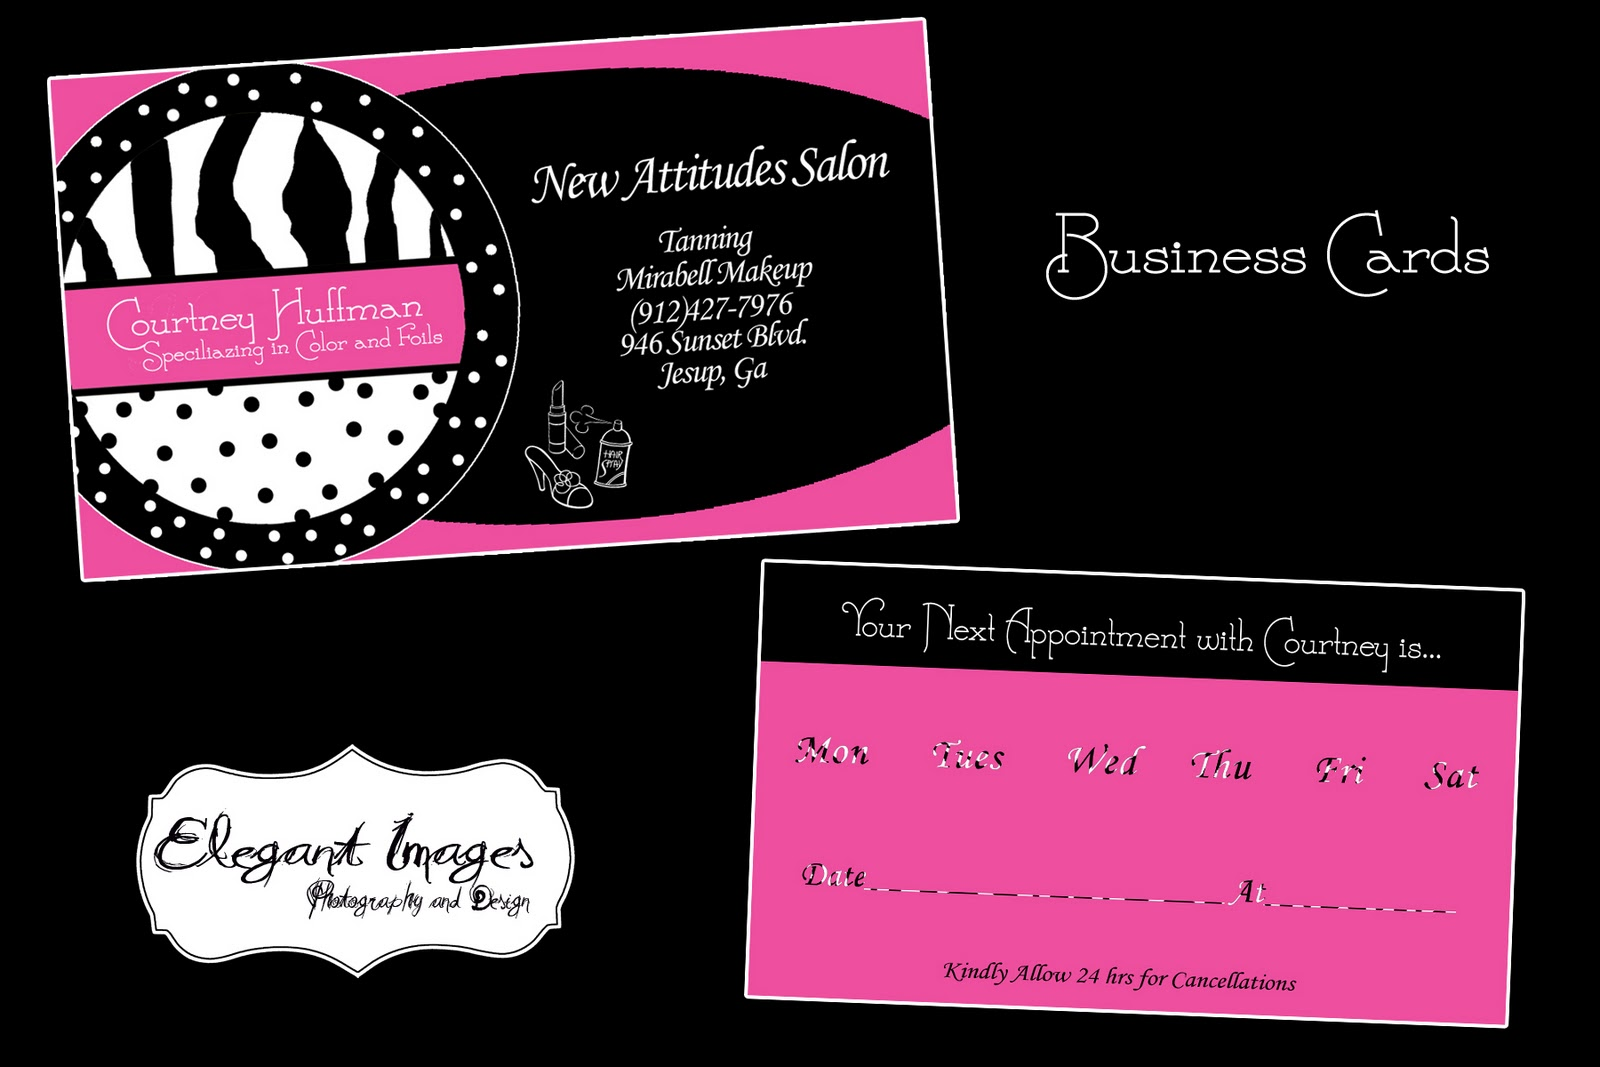 Elegant images by mandy business cards for courtney for A new attitude salon